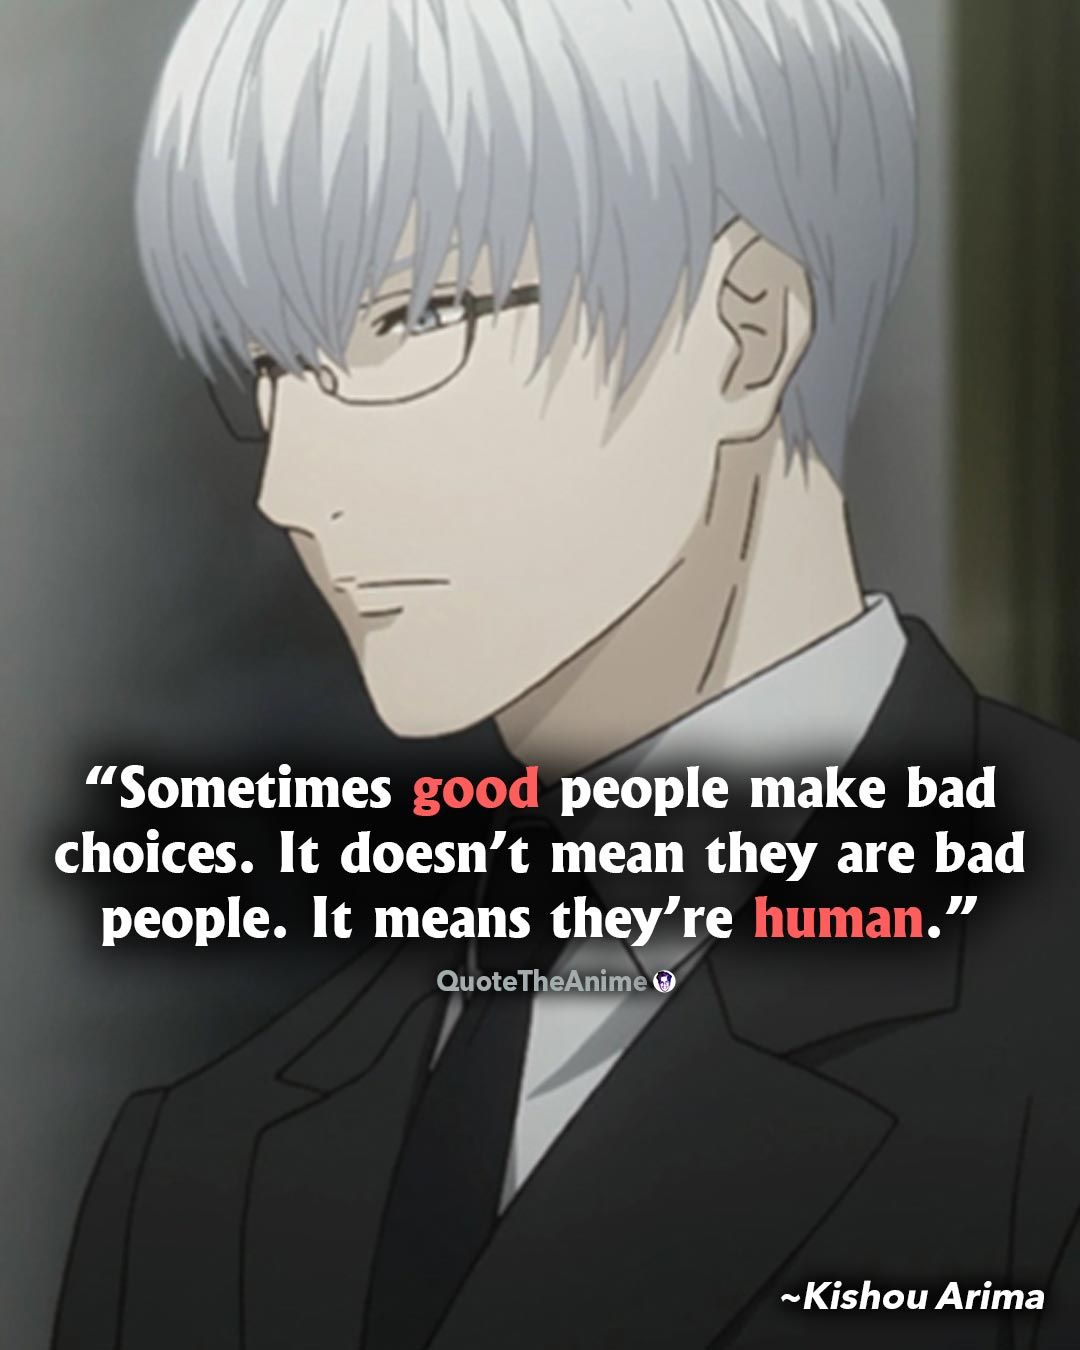 17+ Powerful Tokyo Ghoul Quotes (HQ Images) | QTA